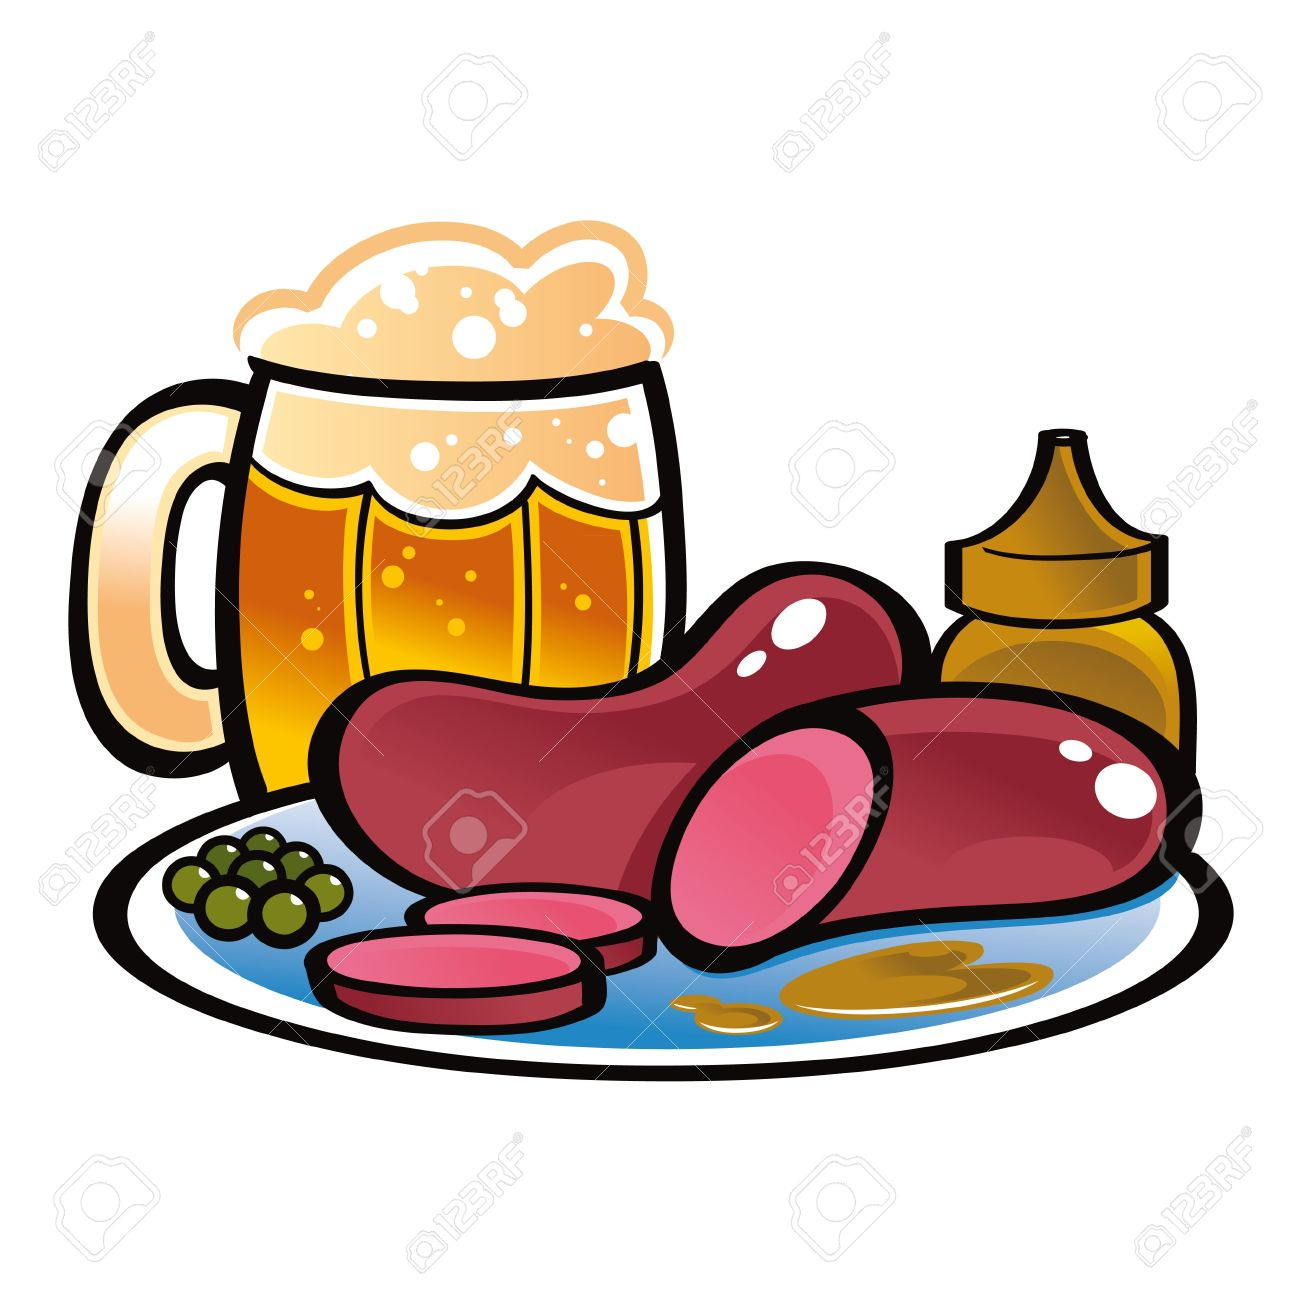 german sausages beer mug food drink mustard peas royalty free rh 123rf com food and drink clip art free food and drink clipart borders